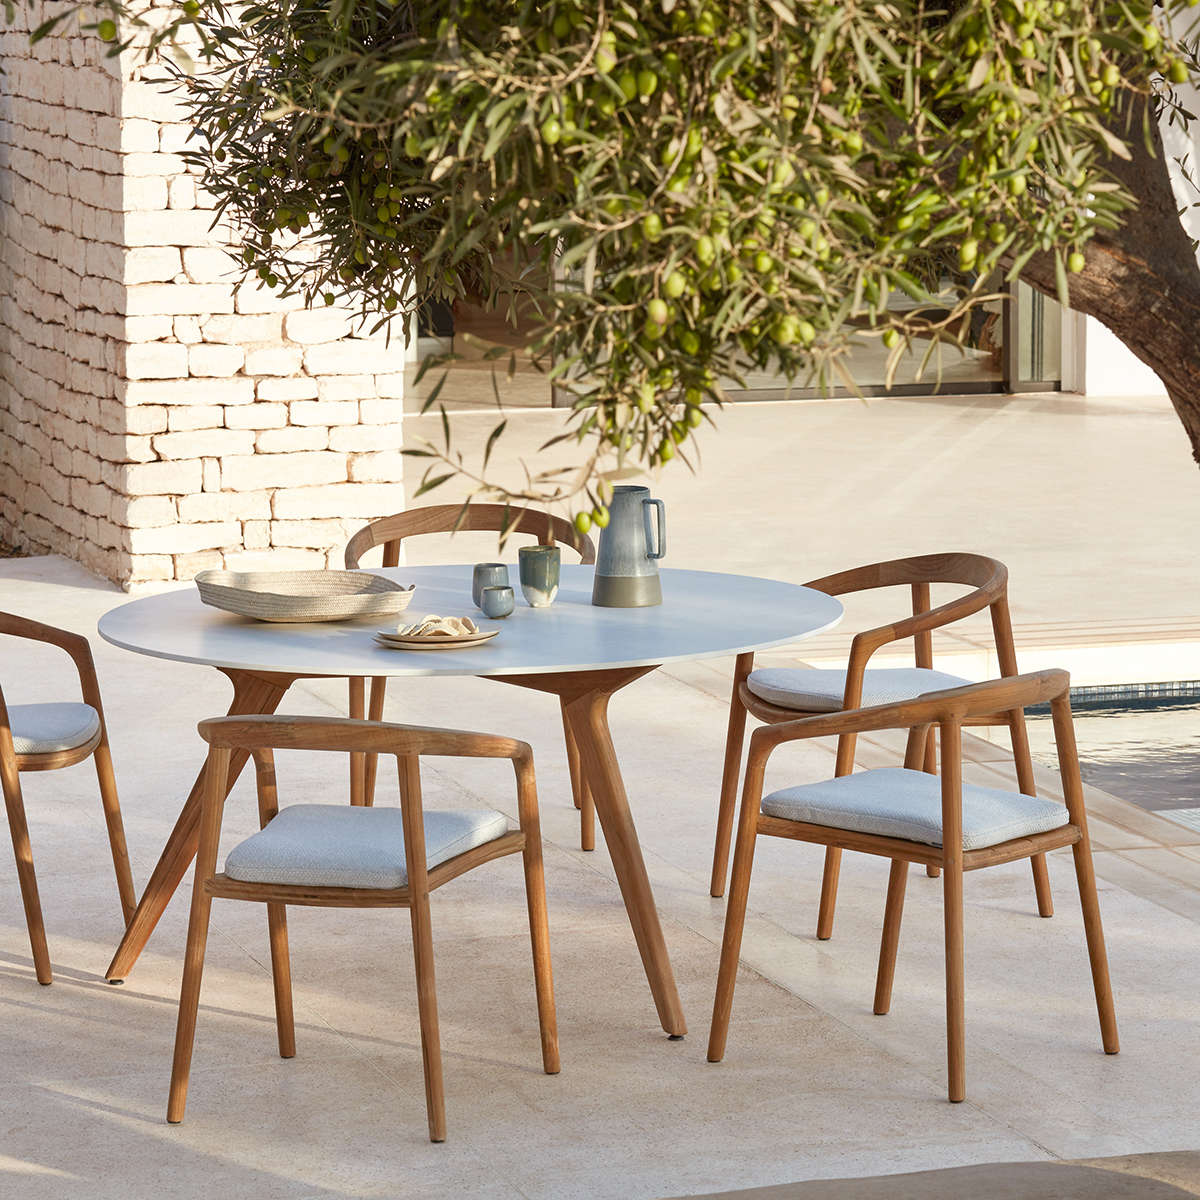 Manutti Torsa Dining Table Ambi 4